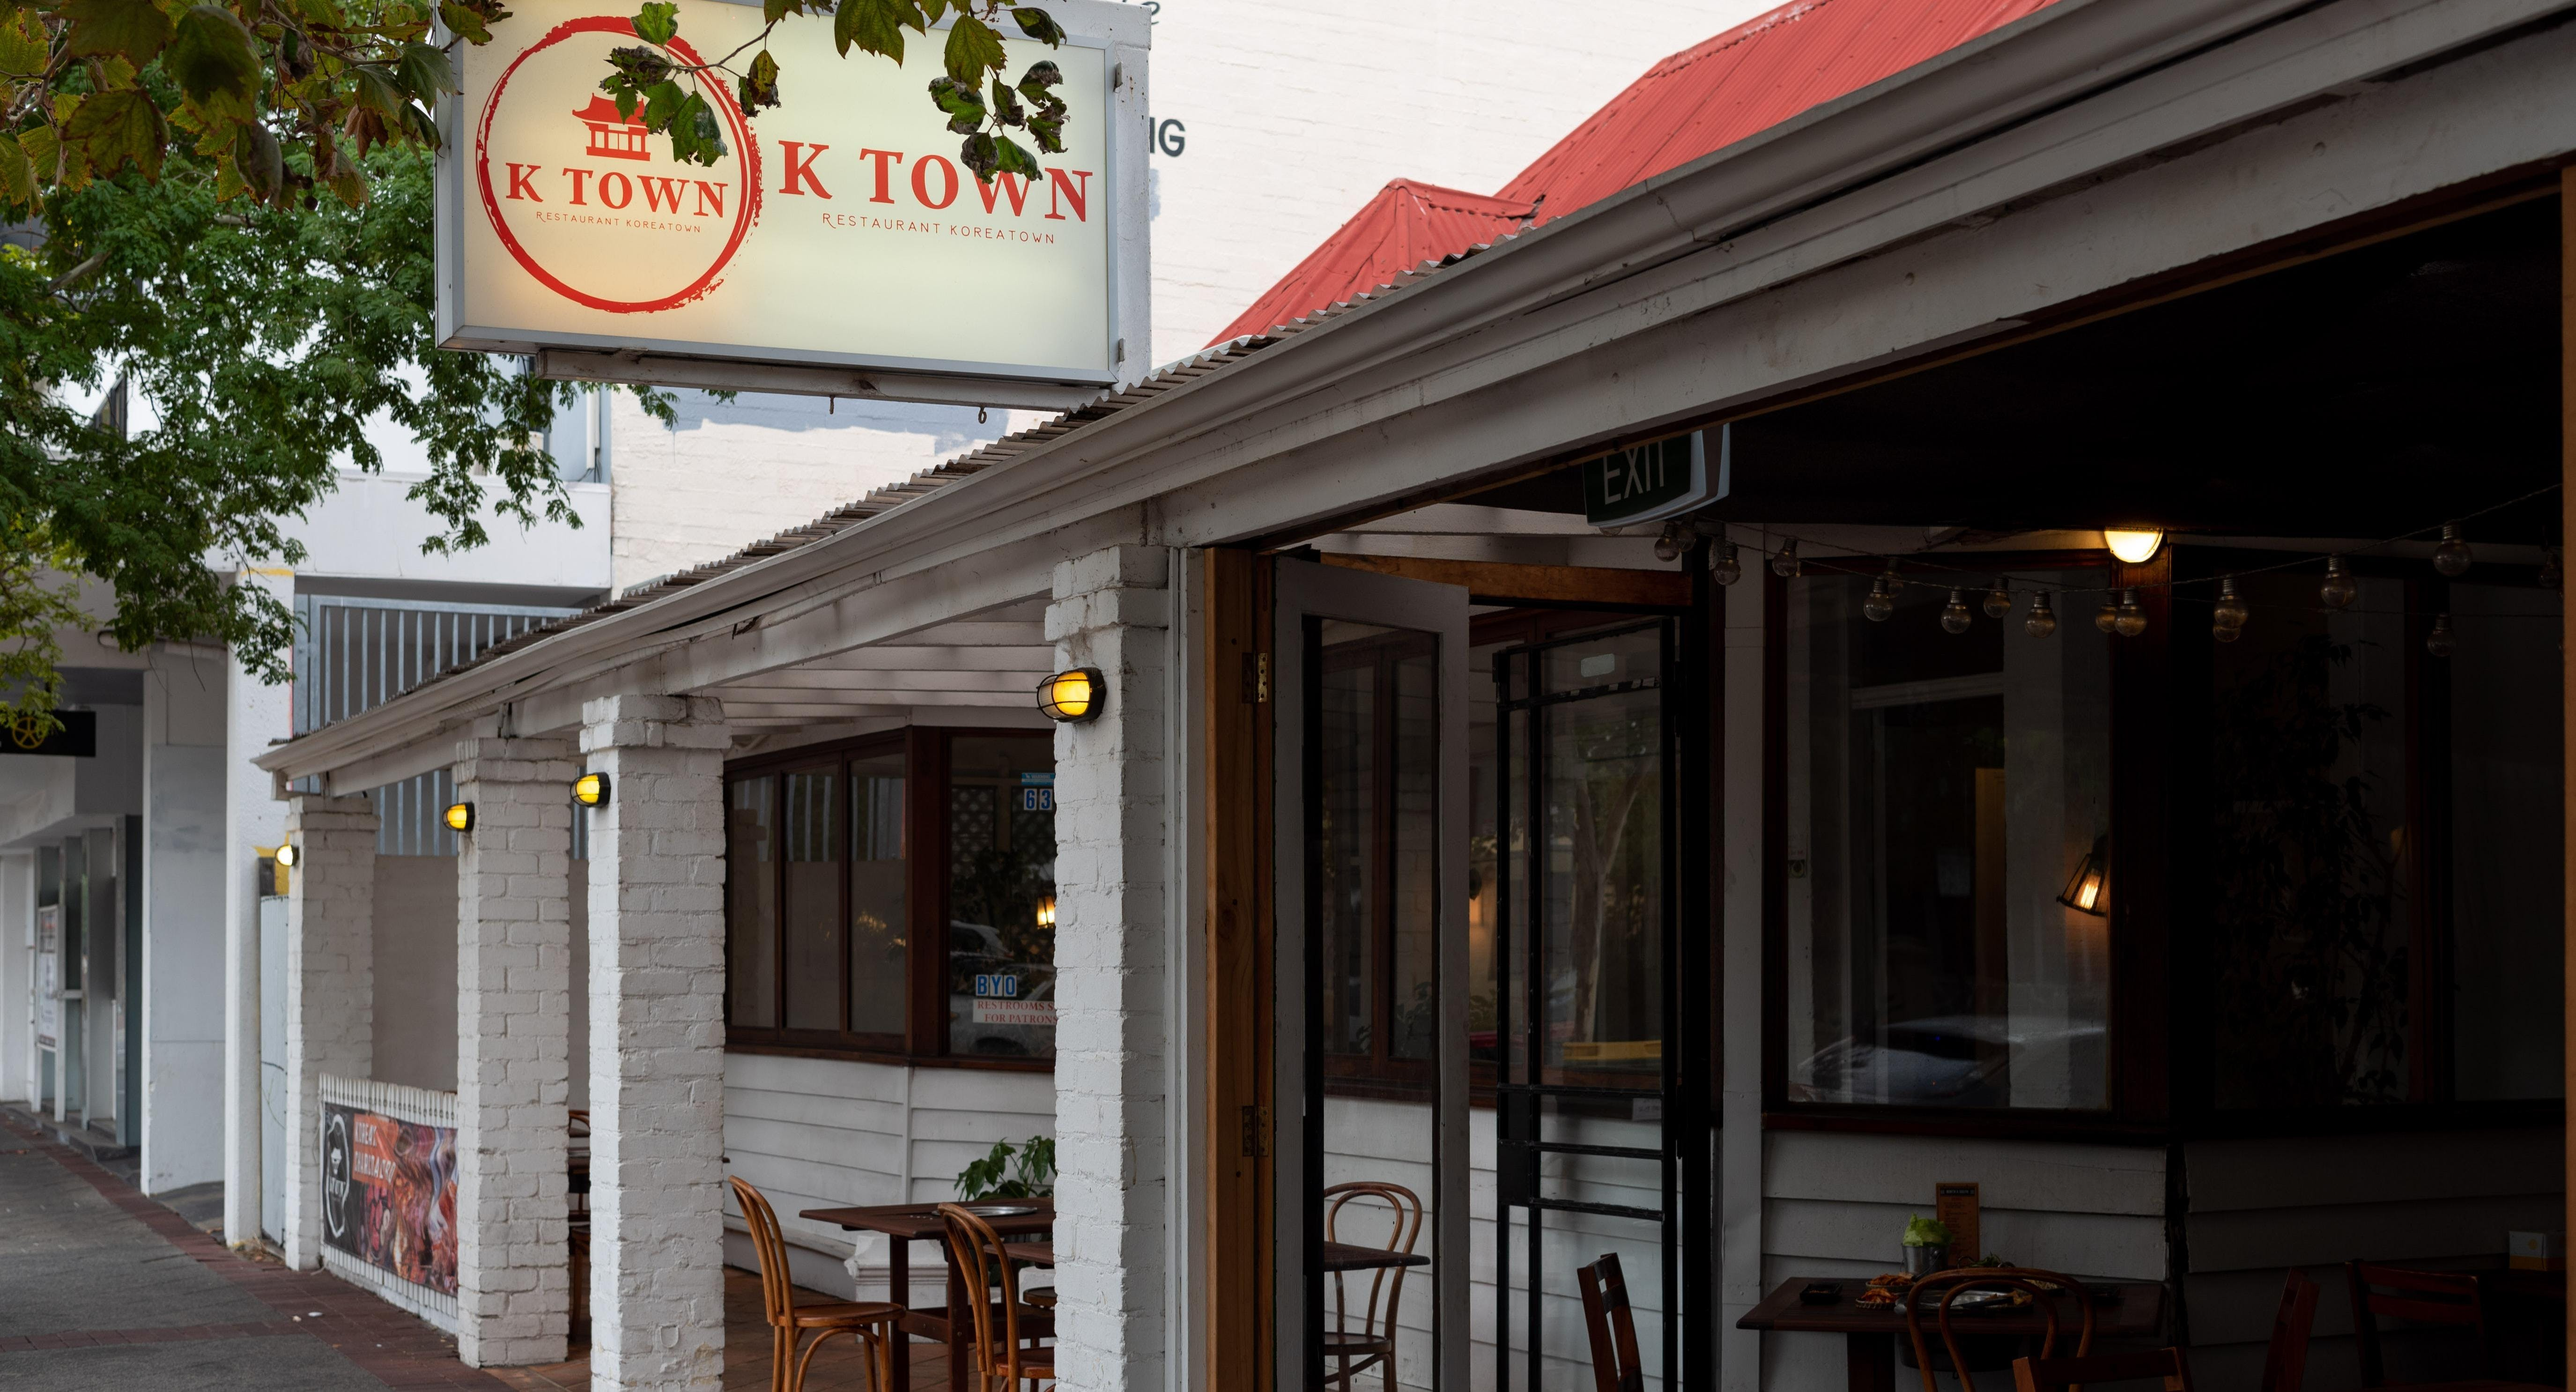 K TOWN Restaurant Perth image 2